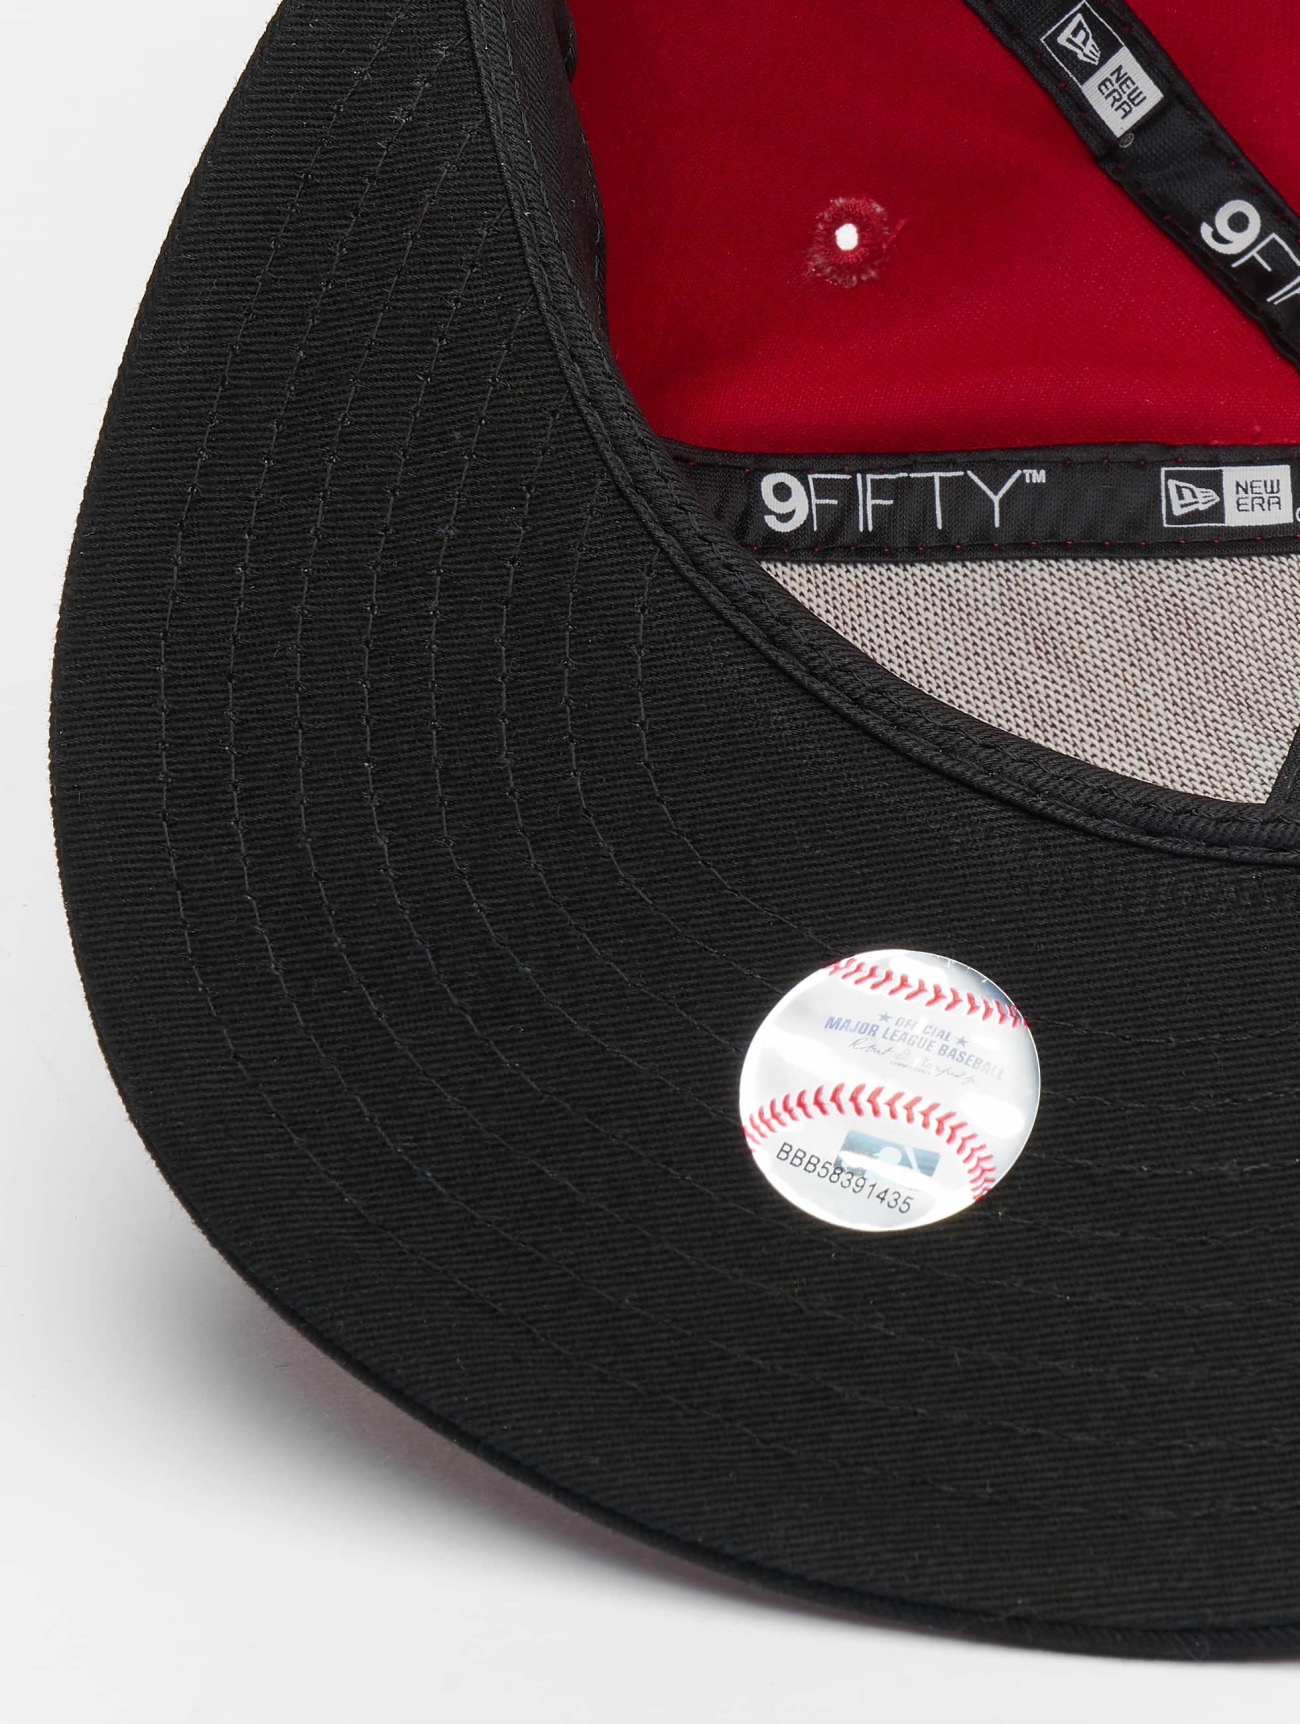 New Era  MLB Cotton Block NY Yankees  rouge  Casquette Snapback & Strapback  116669 Homme Casquettes